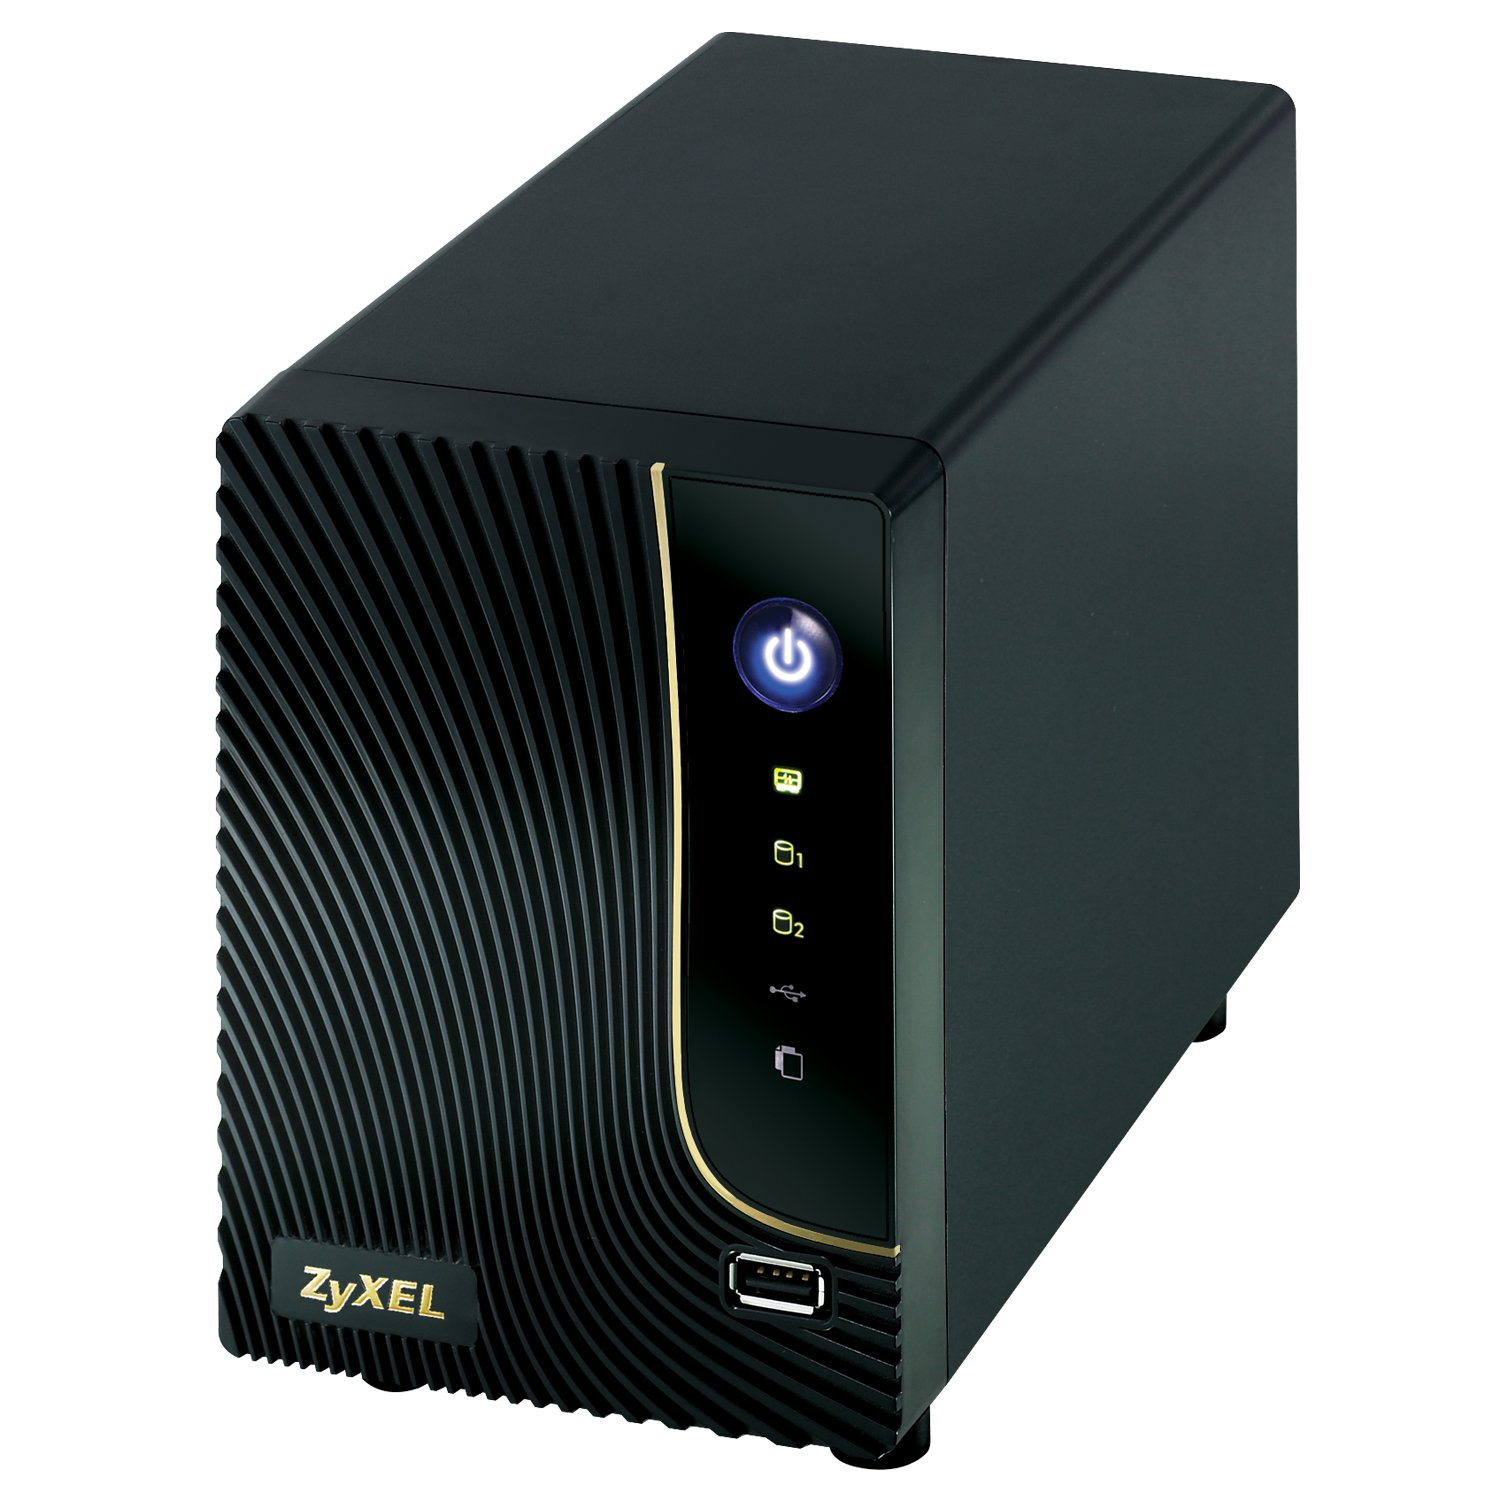 ZyXEL NSA320 High Performance 2-bay Network Attached Storage and Media Server